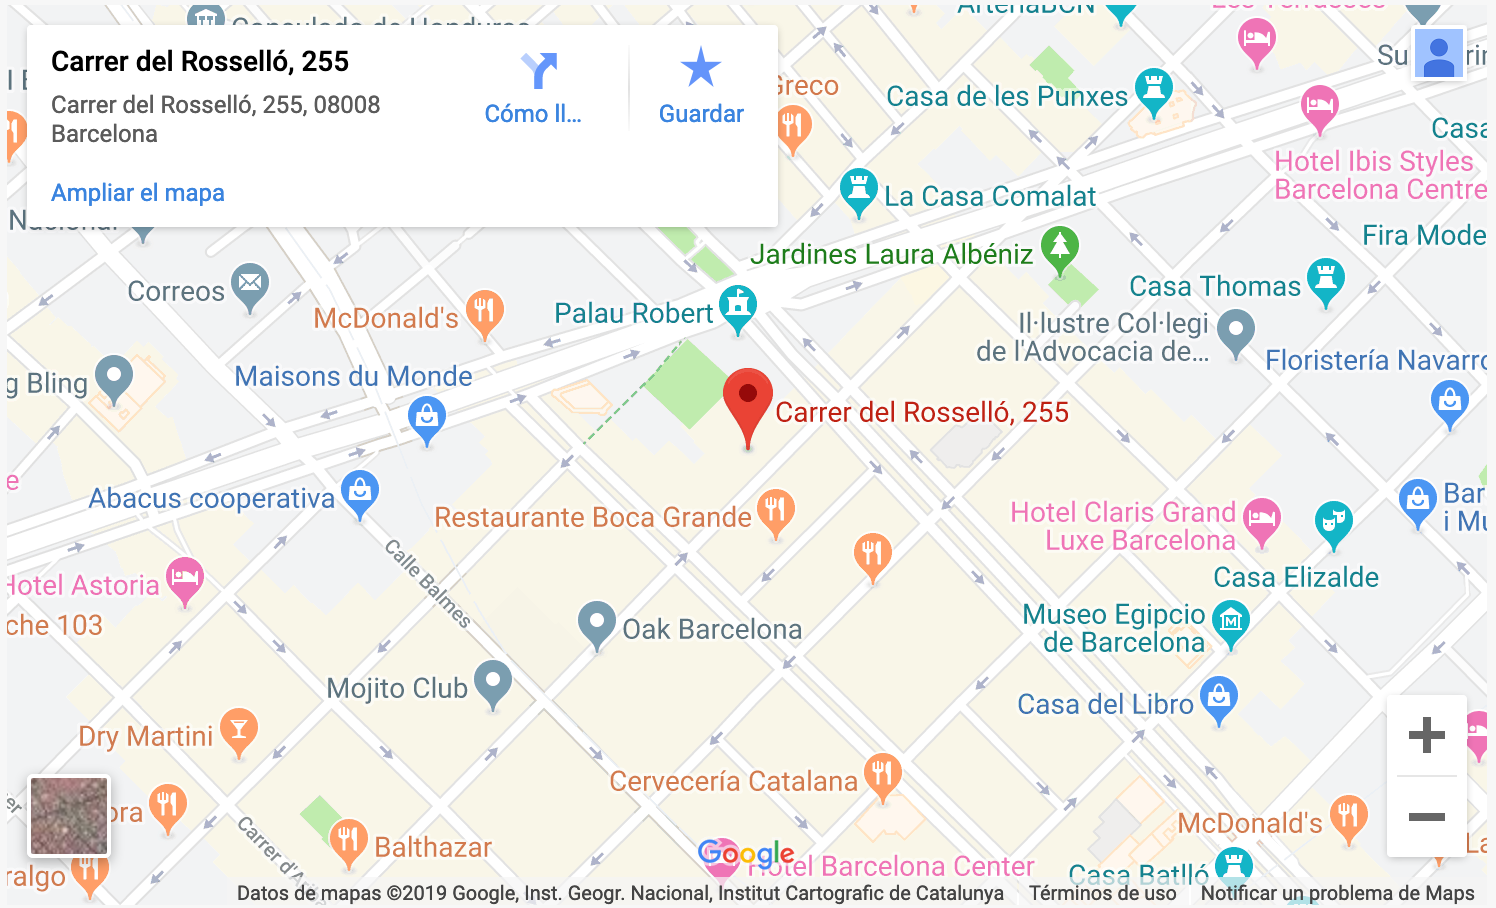 Hospital Clinic Barcelona Mapa.Home Vivo Cocktail Tapas Restaurant